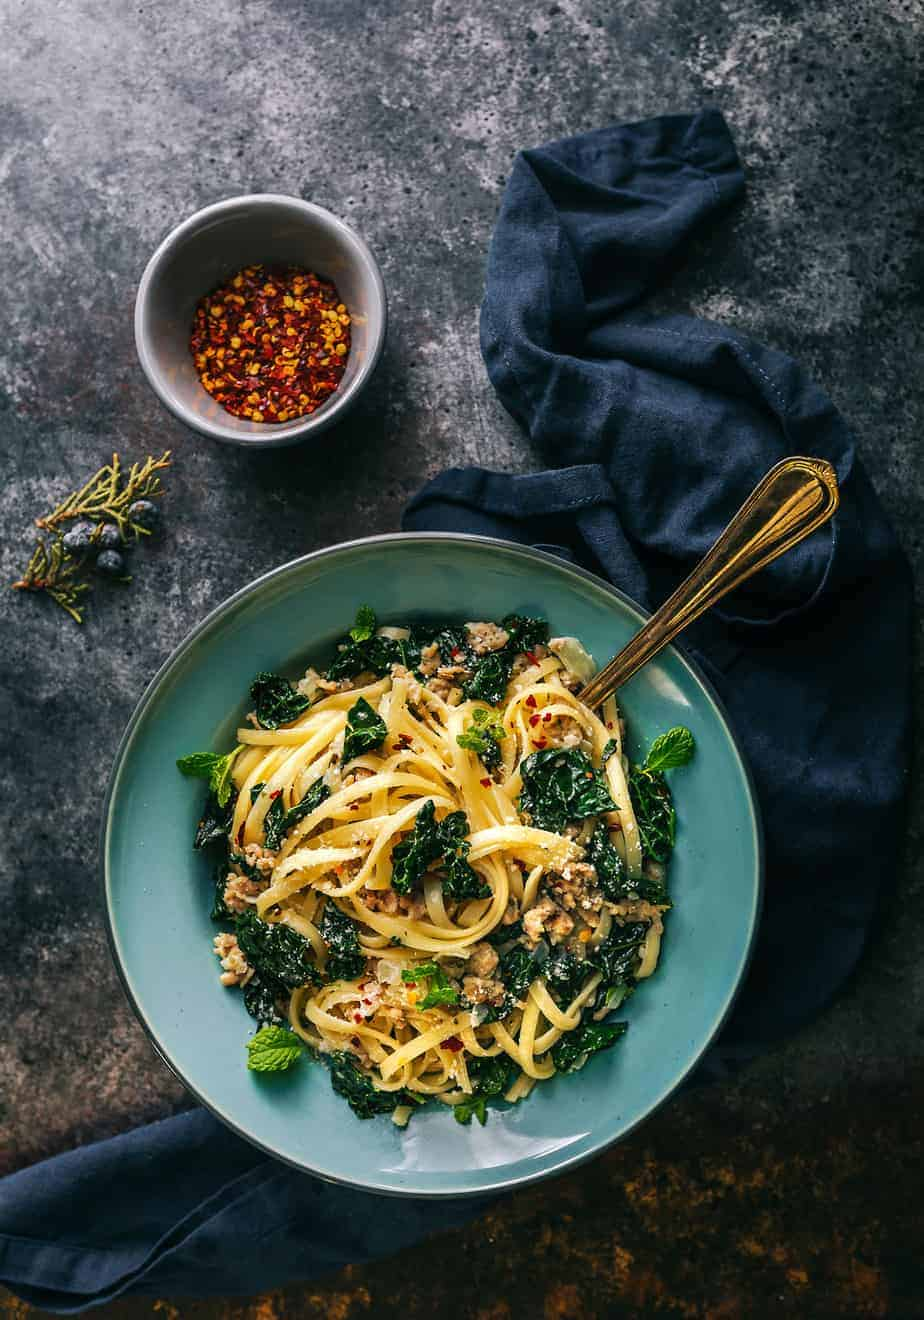 Fettuccine Alfredo with Chicken Sausage and Kale